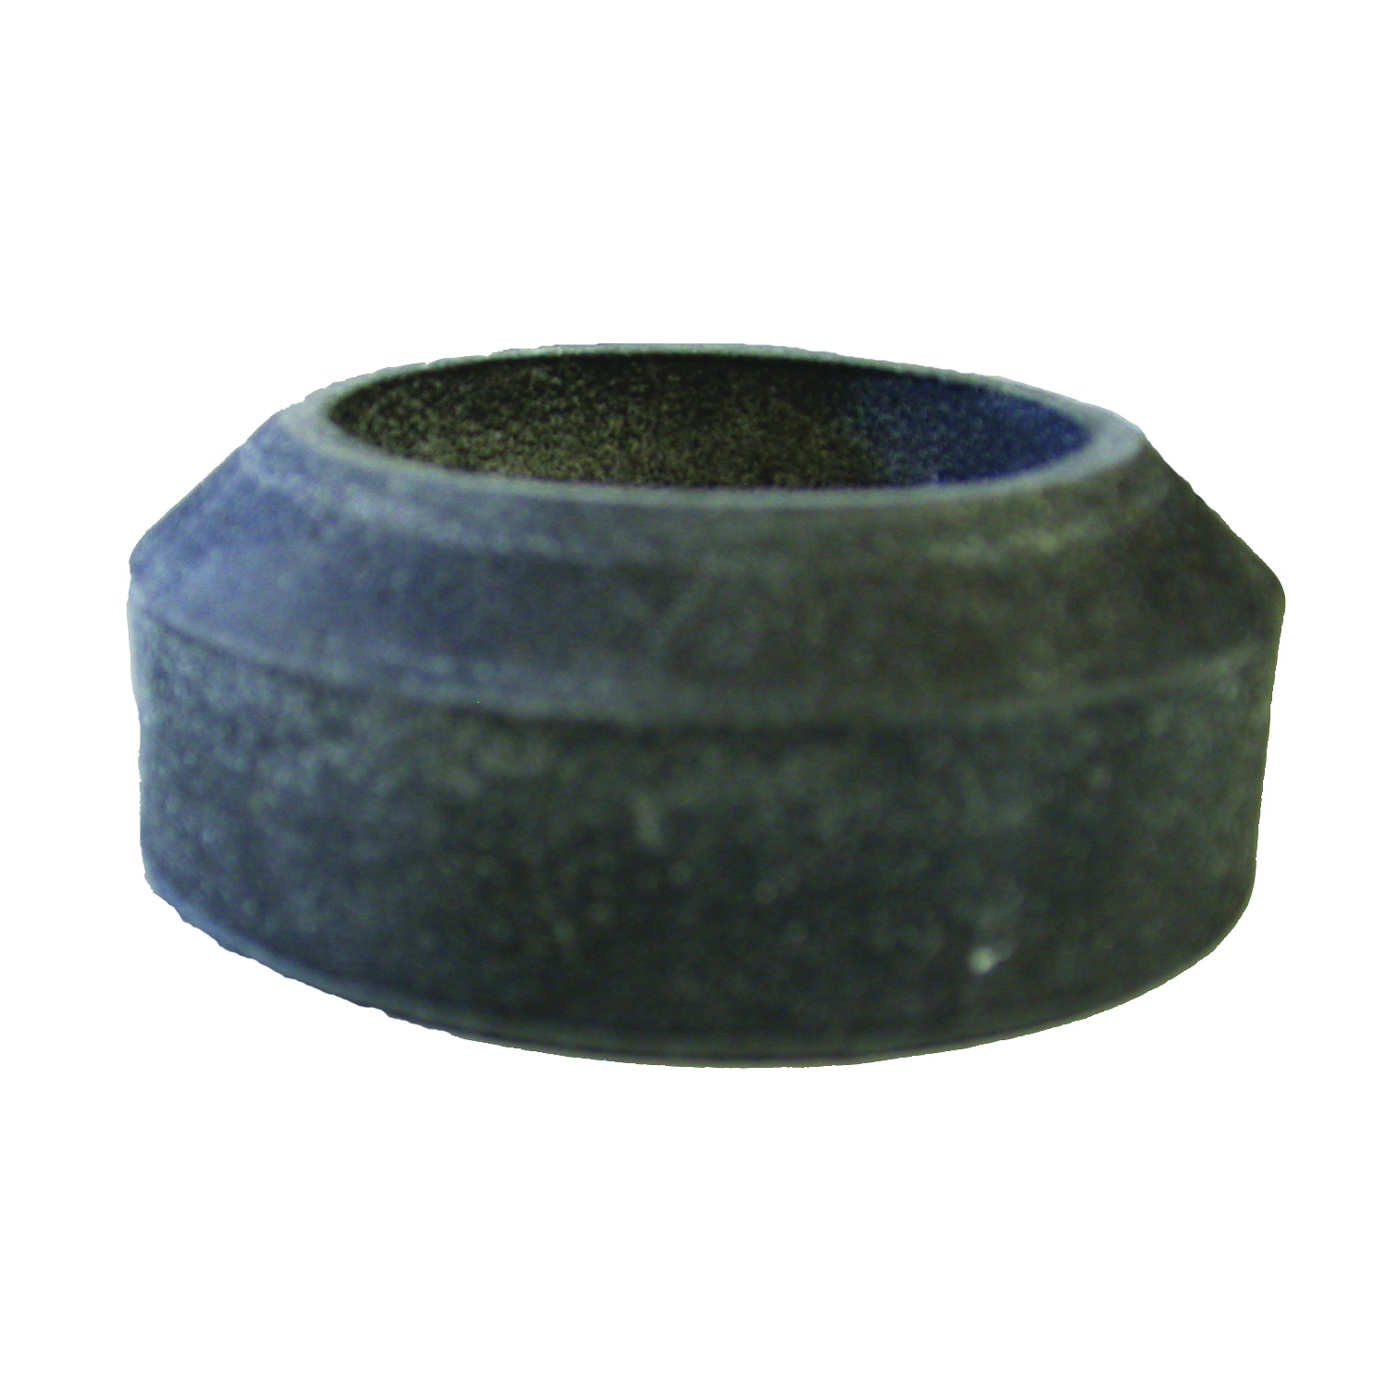 Picture of Korky 000460 Bowl Washer, Sponge Rubber